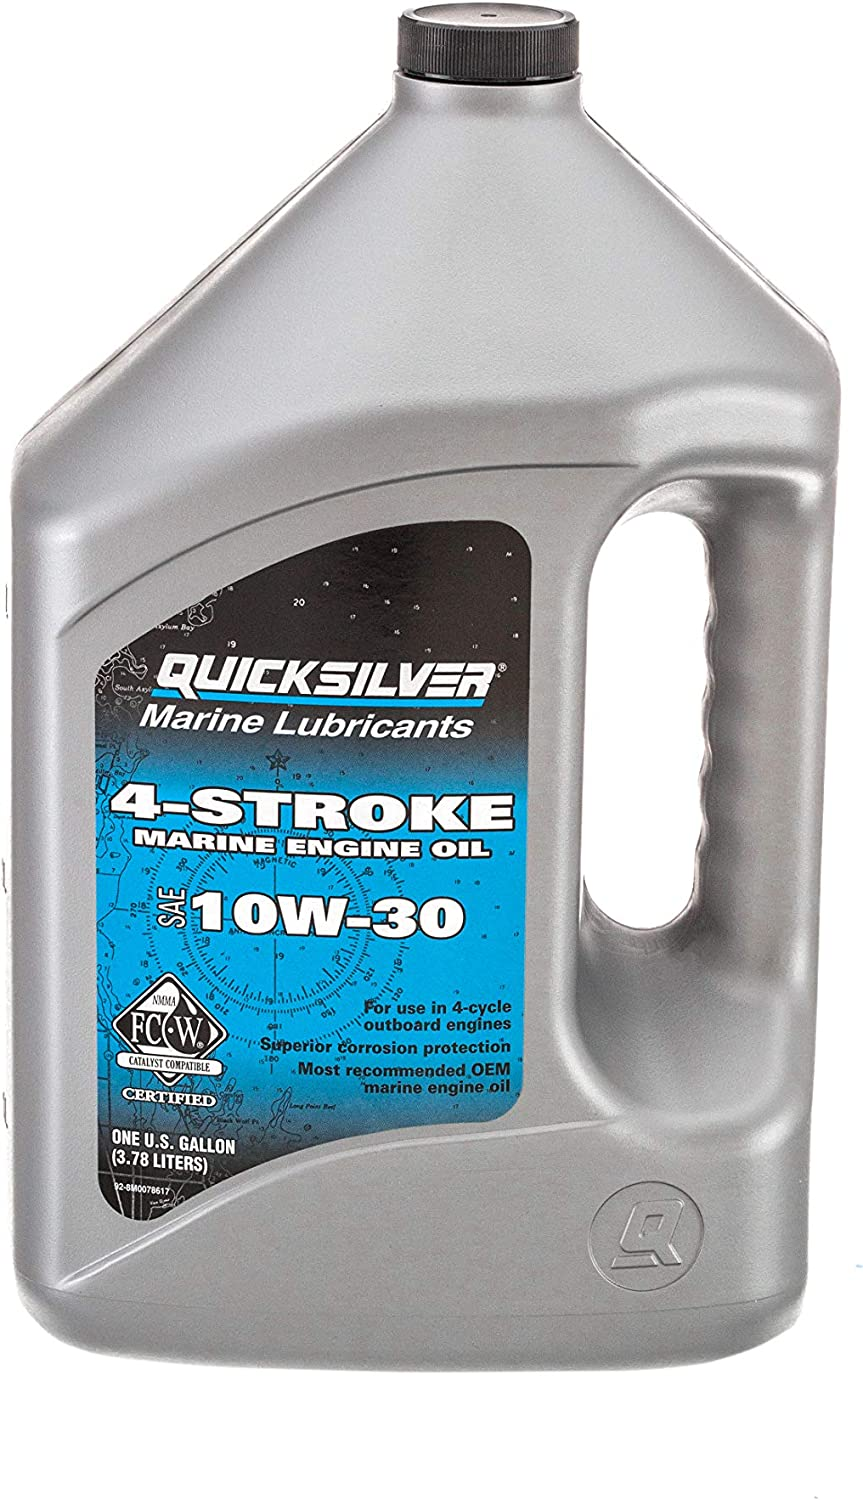 Quicksilver 8M0078617 4-Stroke Marine Engine Oil – for Outboard, Sterndrive & Inboard Engines – SAE 10W-30 Mineral – 1 Gallon